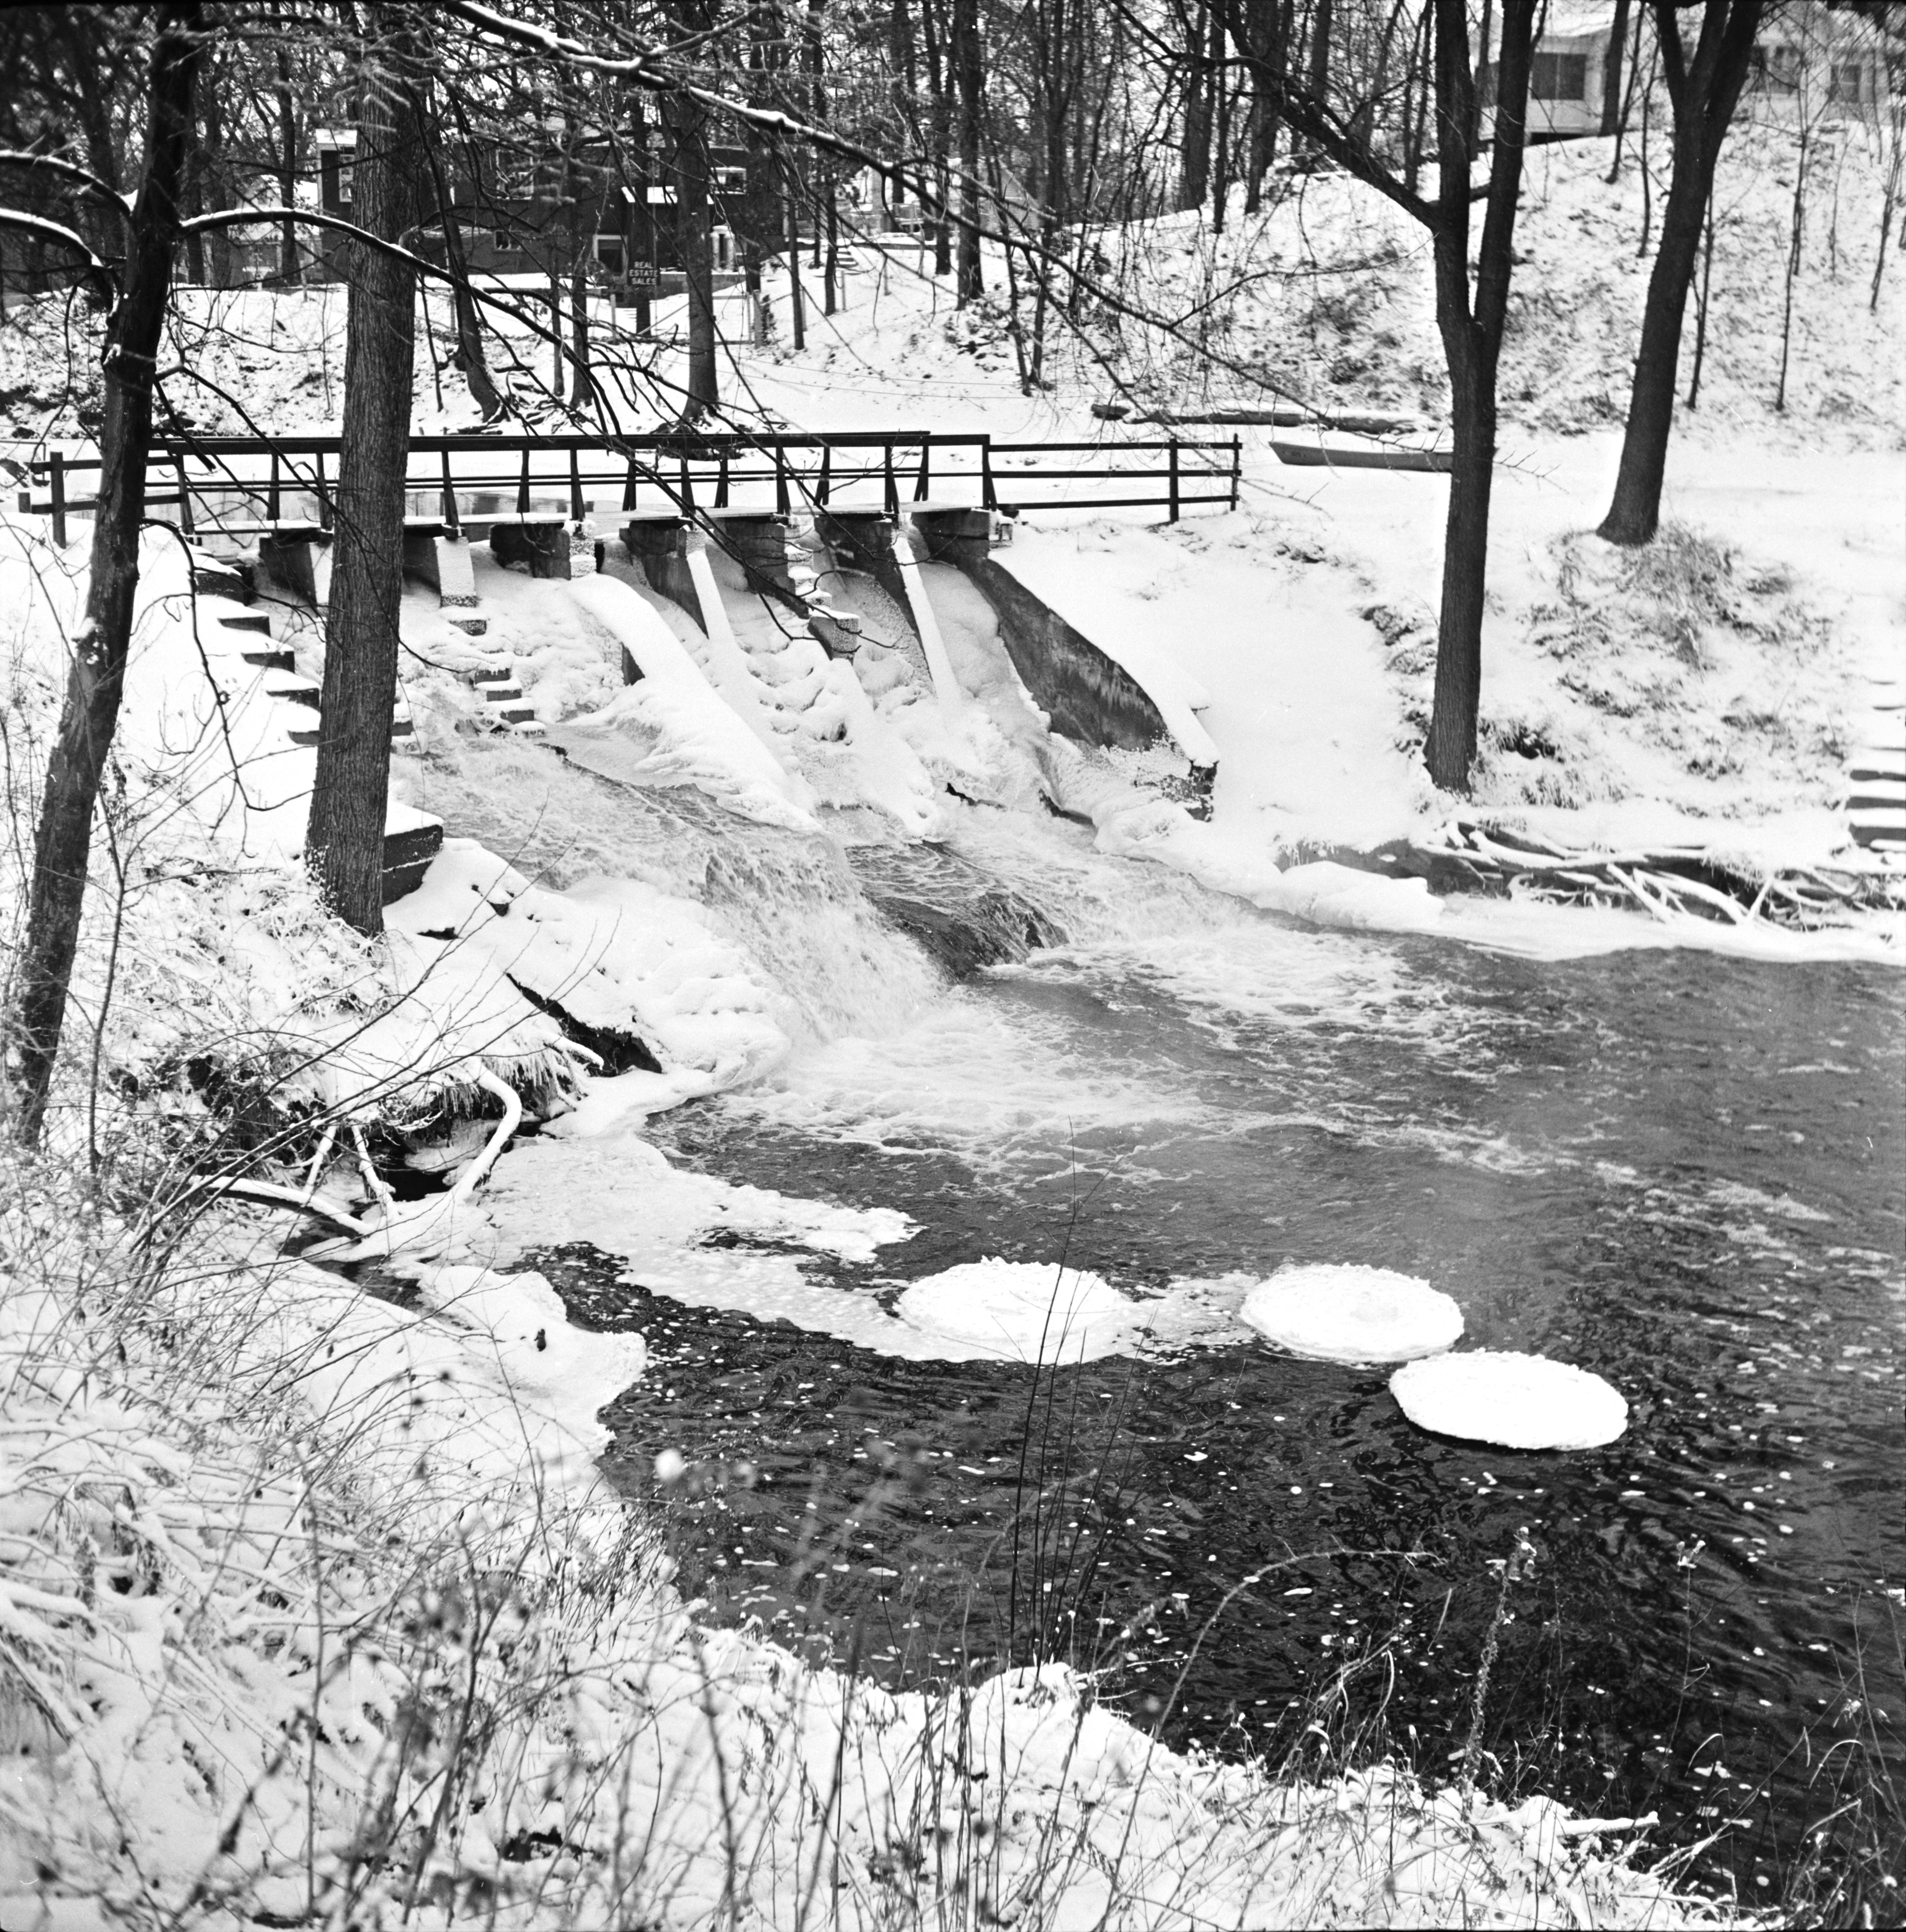 Frozen Dam in Hell, Michigan, January 1962 image